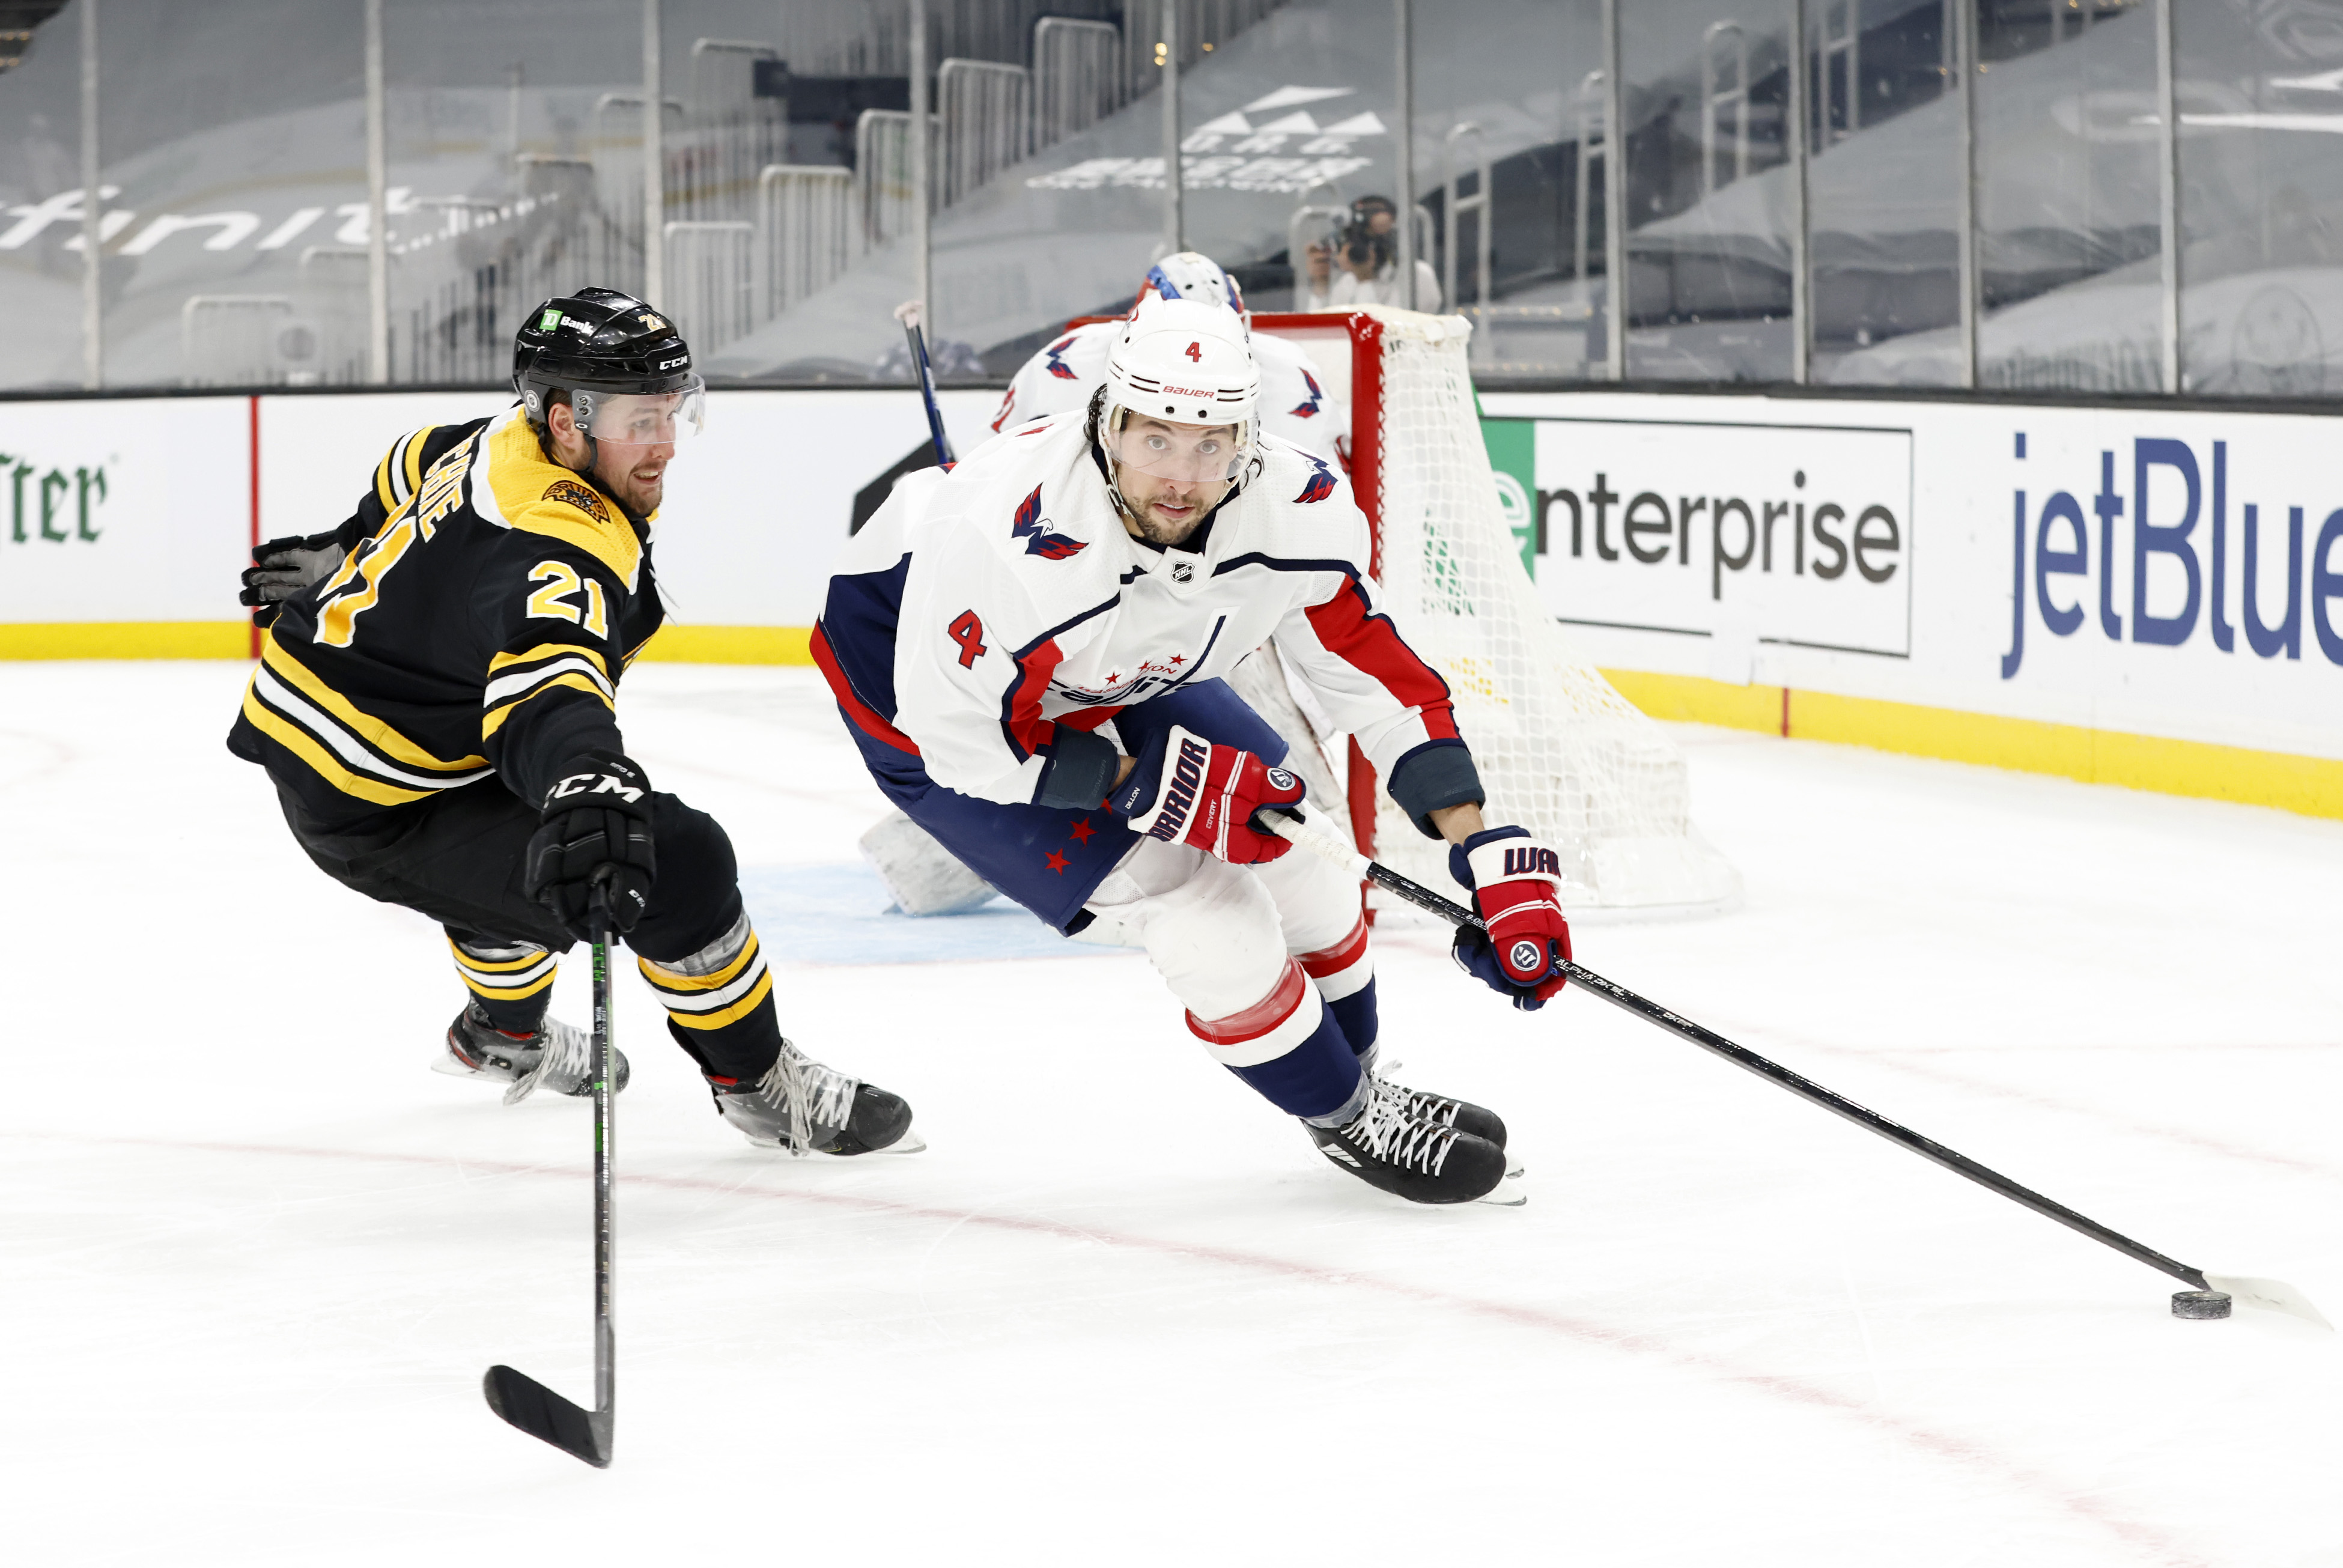 Washington Capitals defenseman Brenden Dillon (4) turns away from Boston Bruins left wing Nick Ritchie (21) during a game between the Boston Bruins and the Washington Capitals on March 3, 2021, at TD Garden in Boston, Massachusetts.